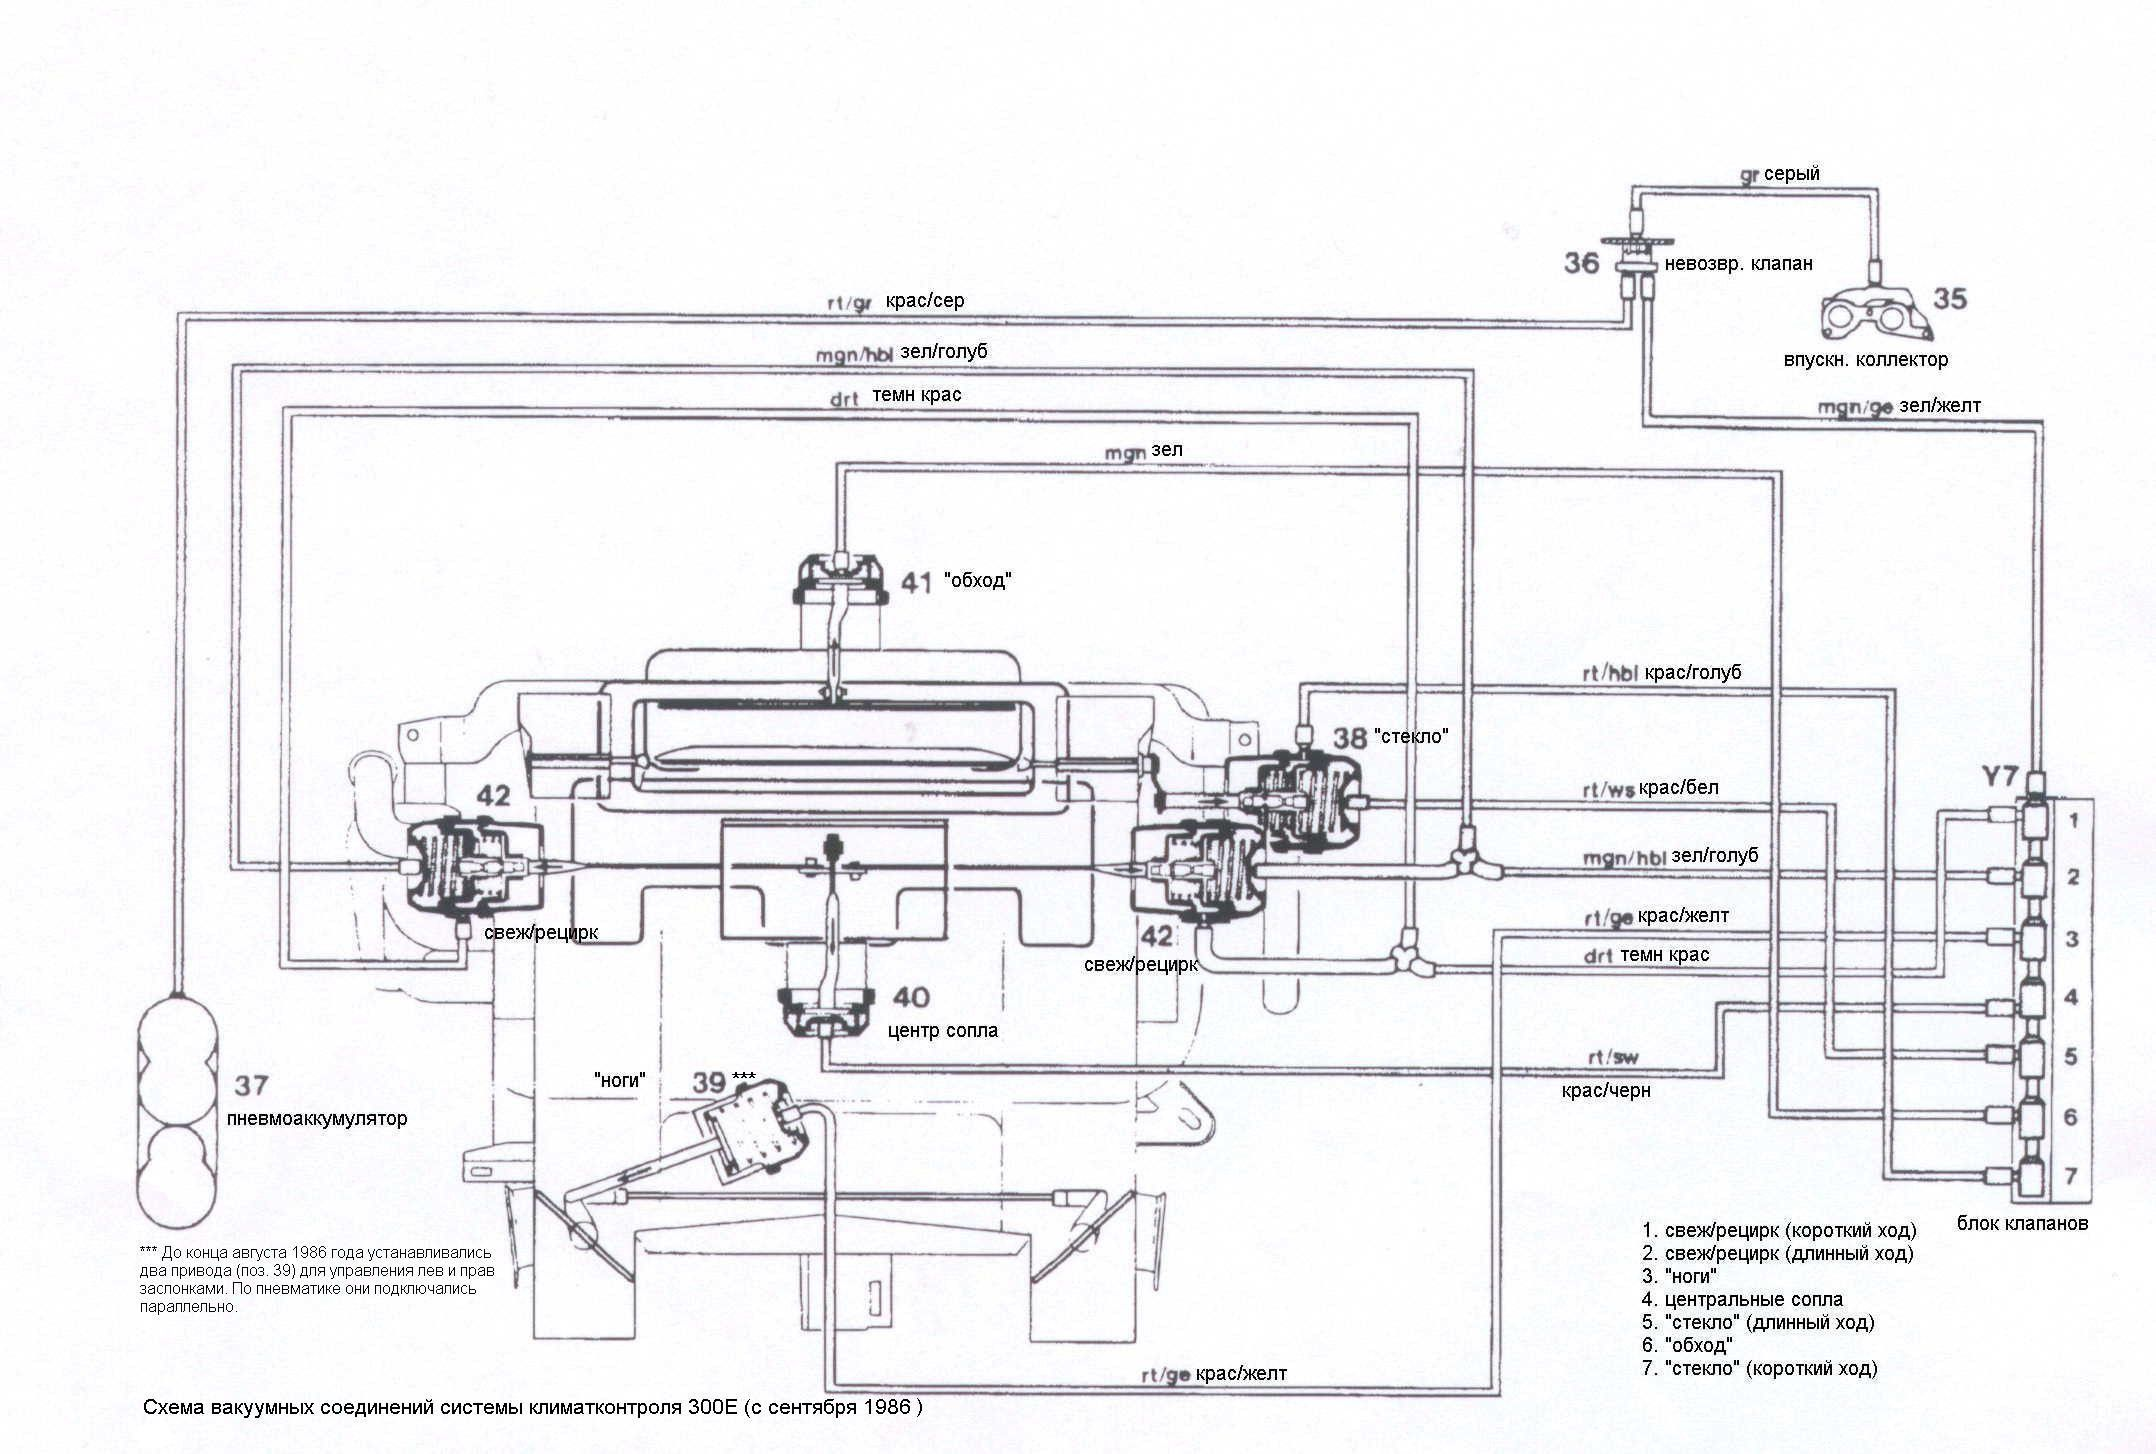 New W124 Ac Wiring Diagram #diagramsample #diagramformats